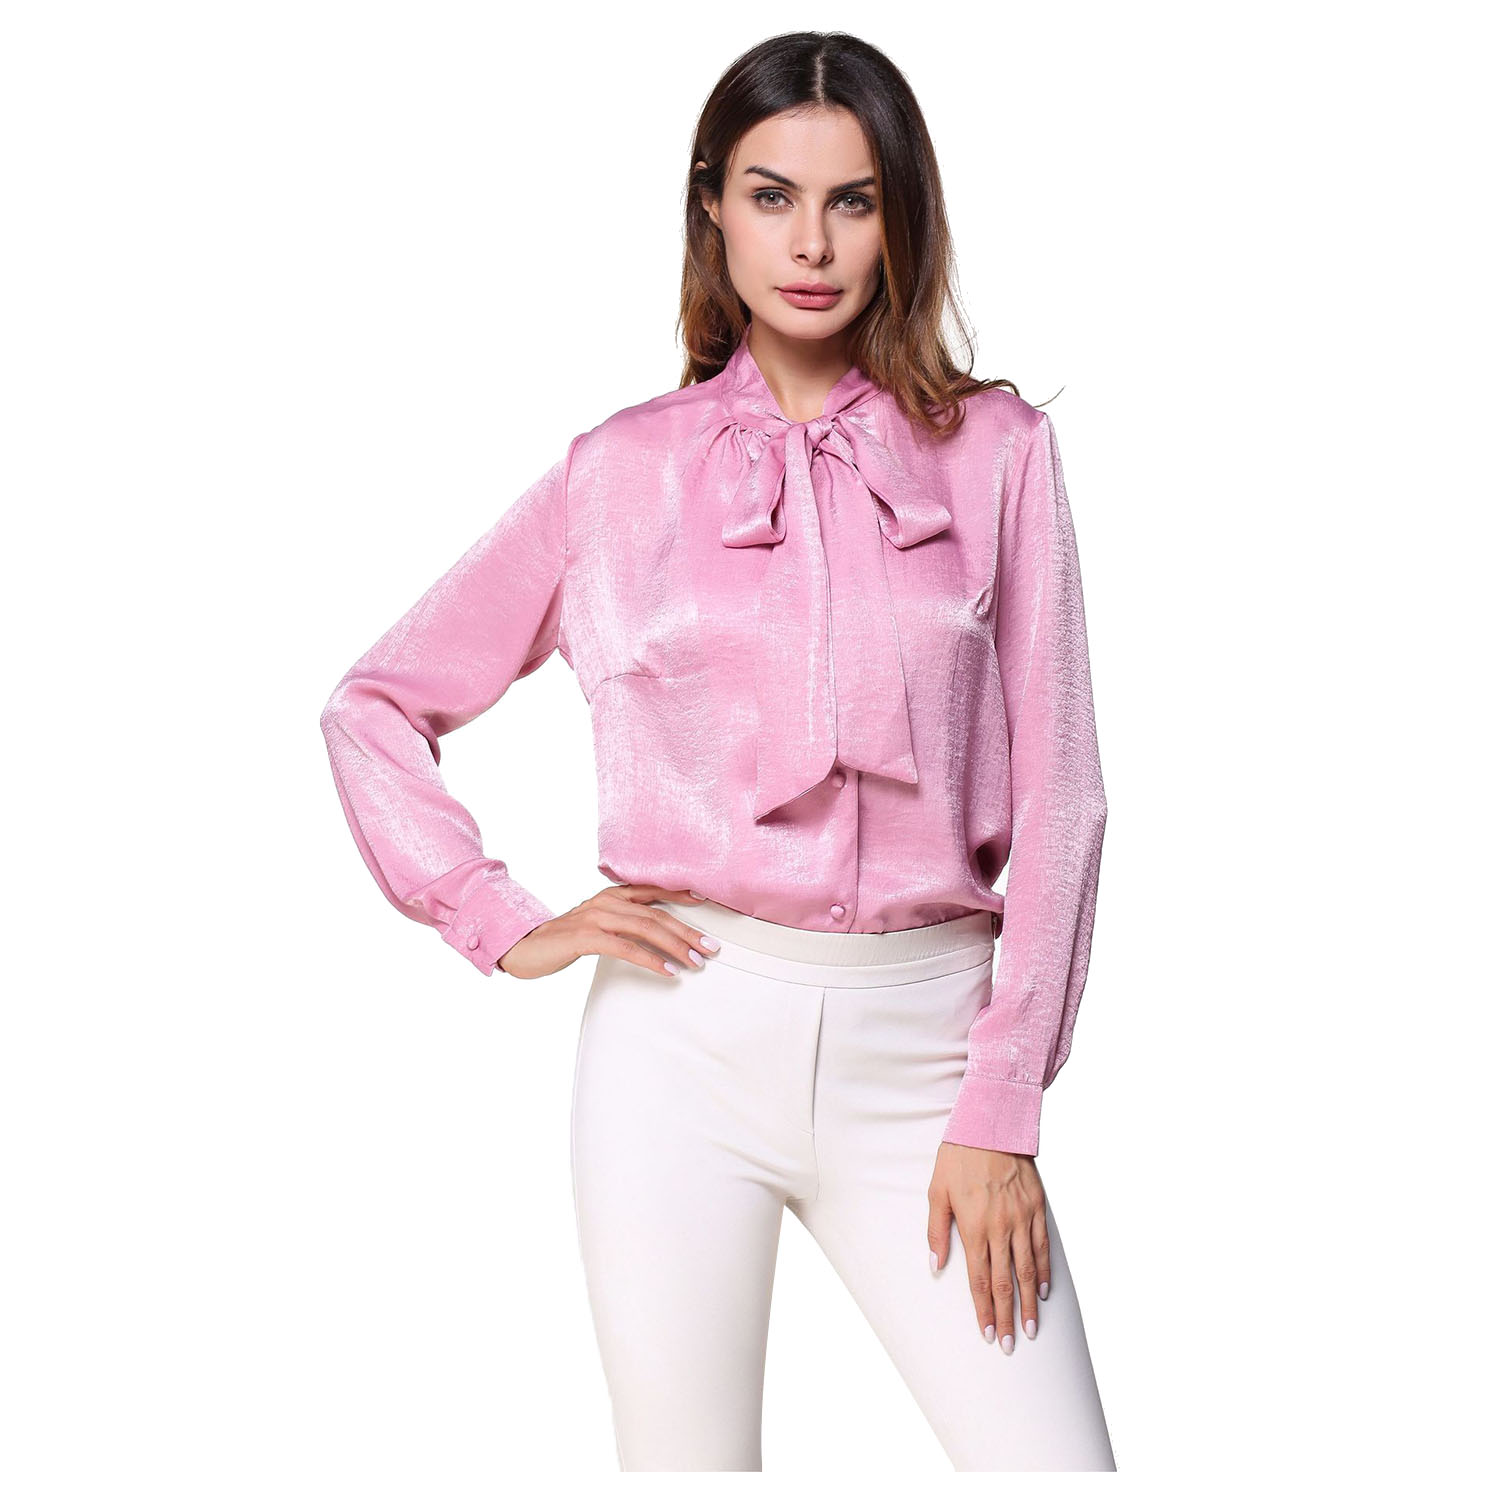 Women's New Casual Long Sleeve Blouse Elegant Long Sleeve Spring Autumn Bow Ties Office Lady Wear Tops Loose Solid Color Shirt